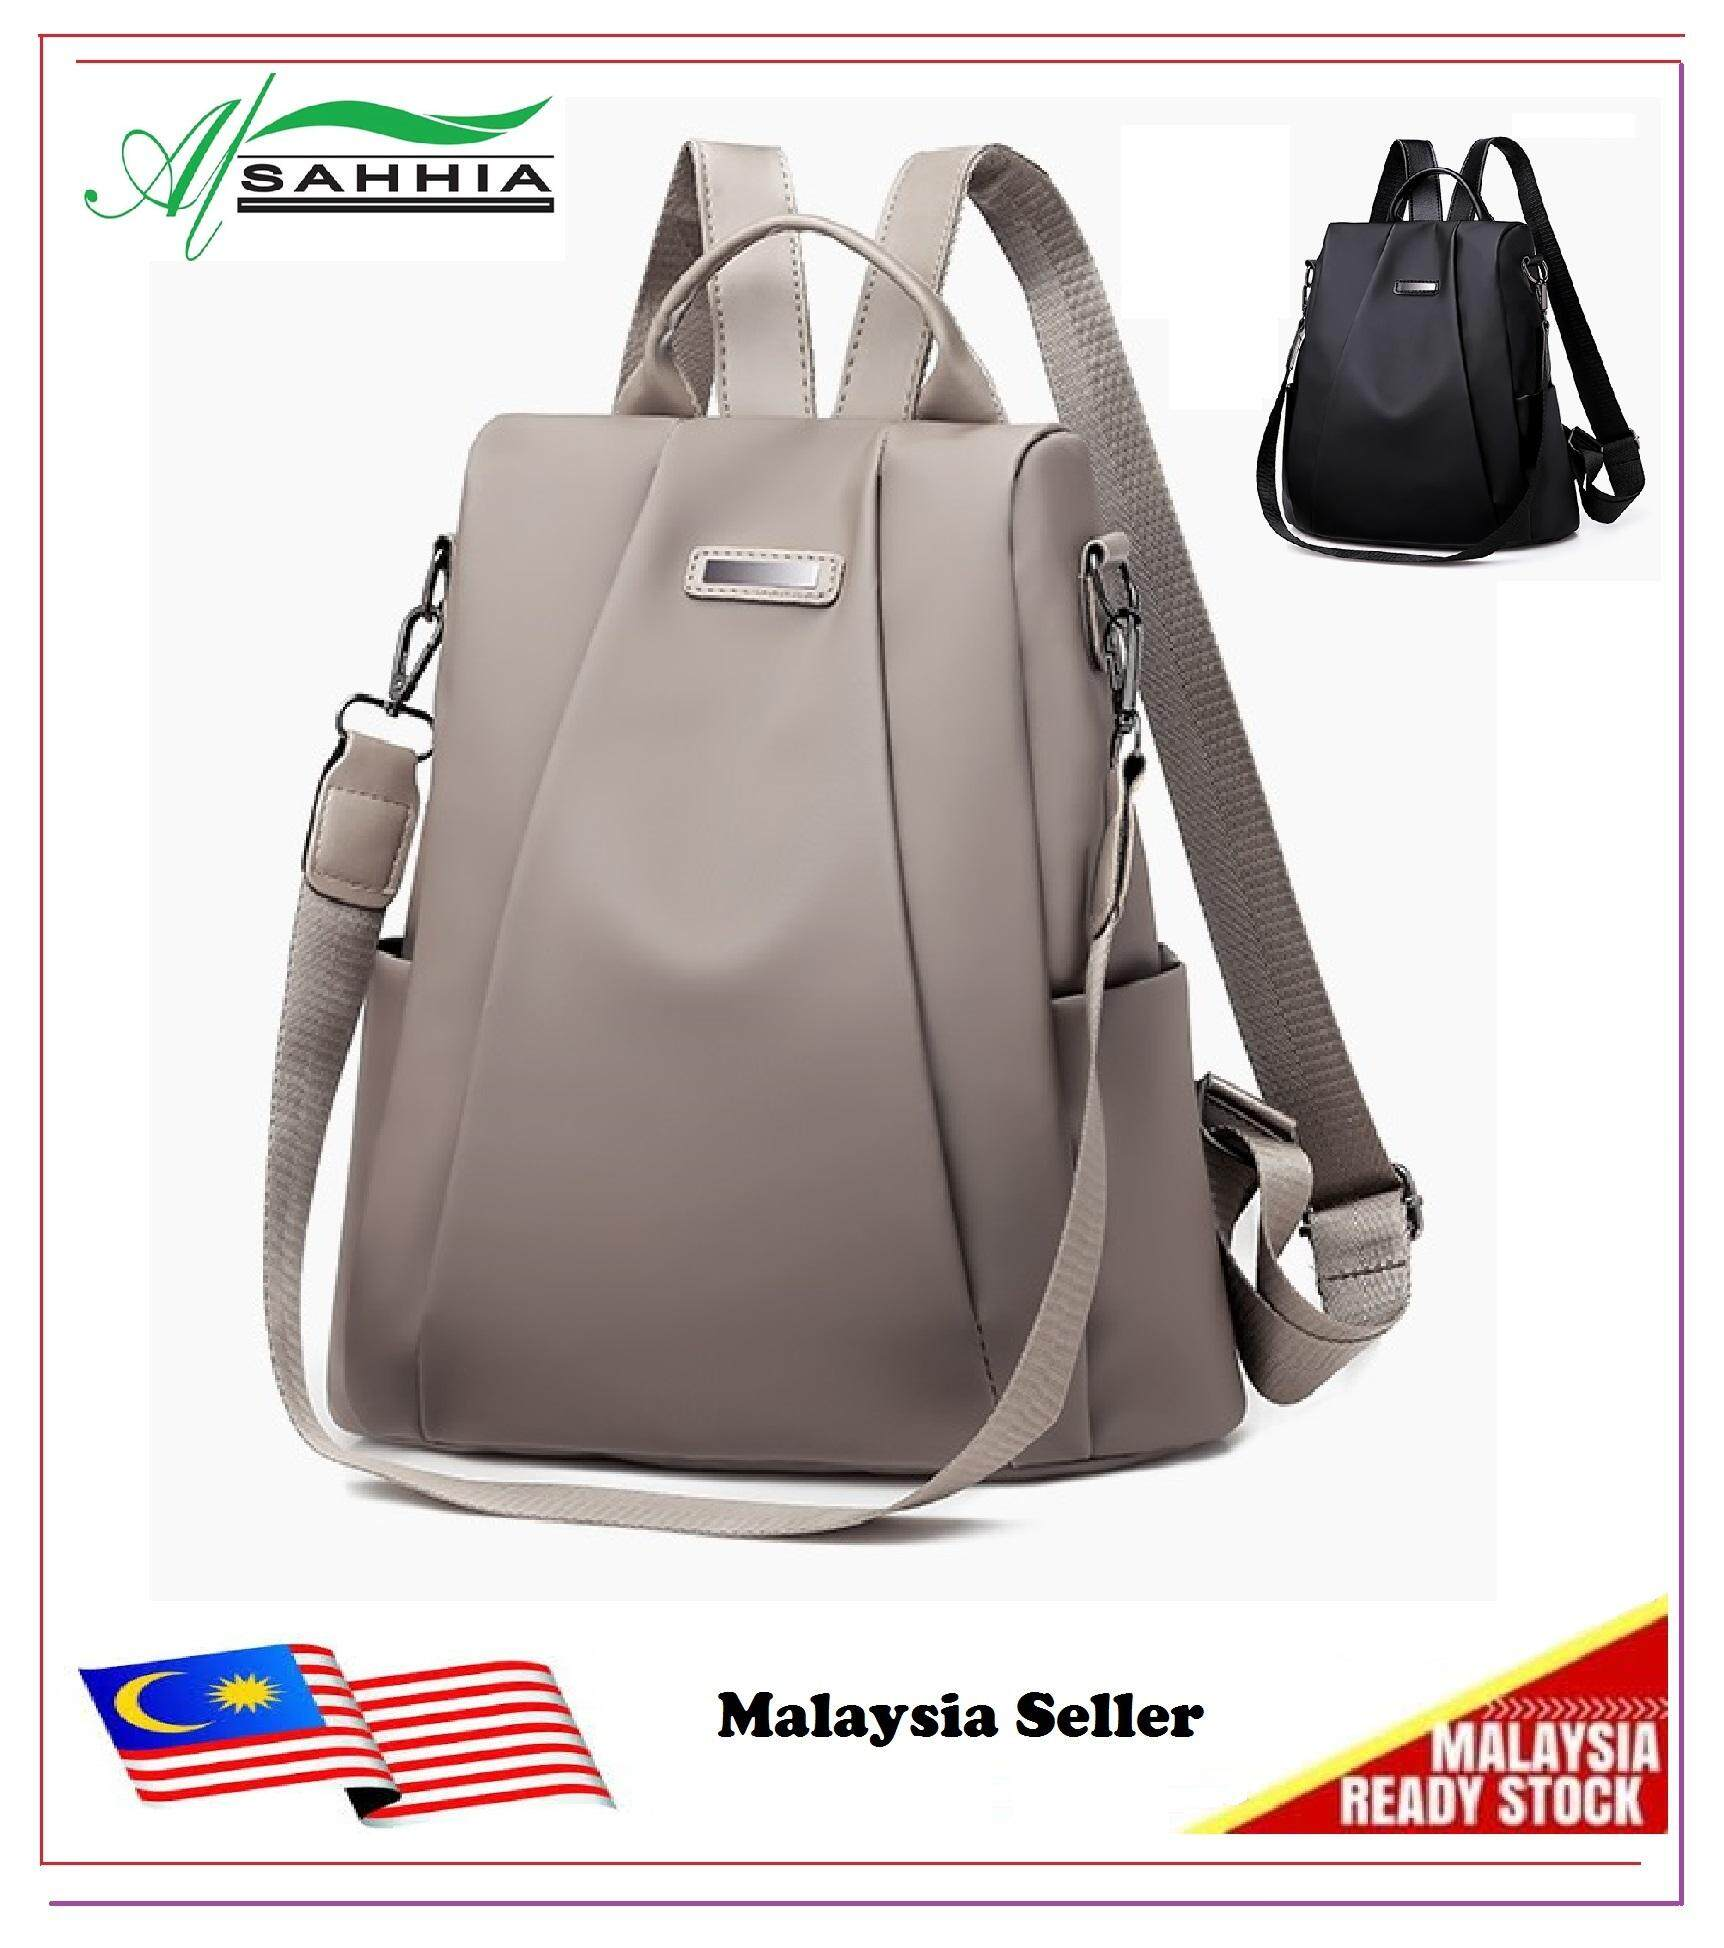 aafa8efa489 3R4 Al Sahhia Ready Stock Plain Oxford Cloth Anti Theft Backpack Casual  Lady Beg